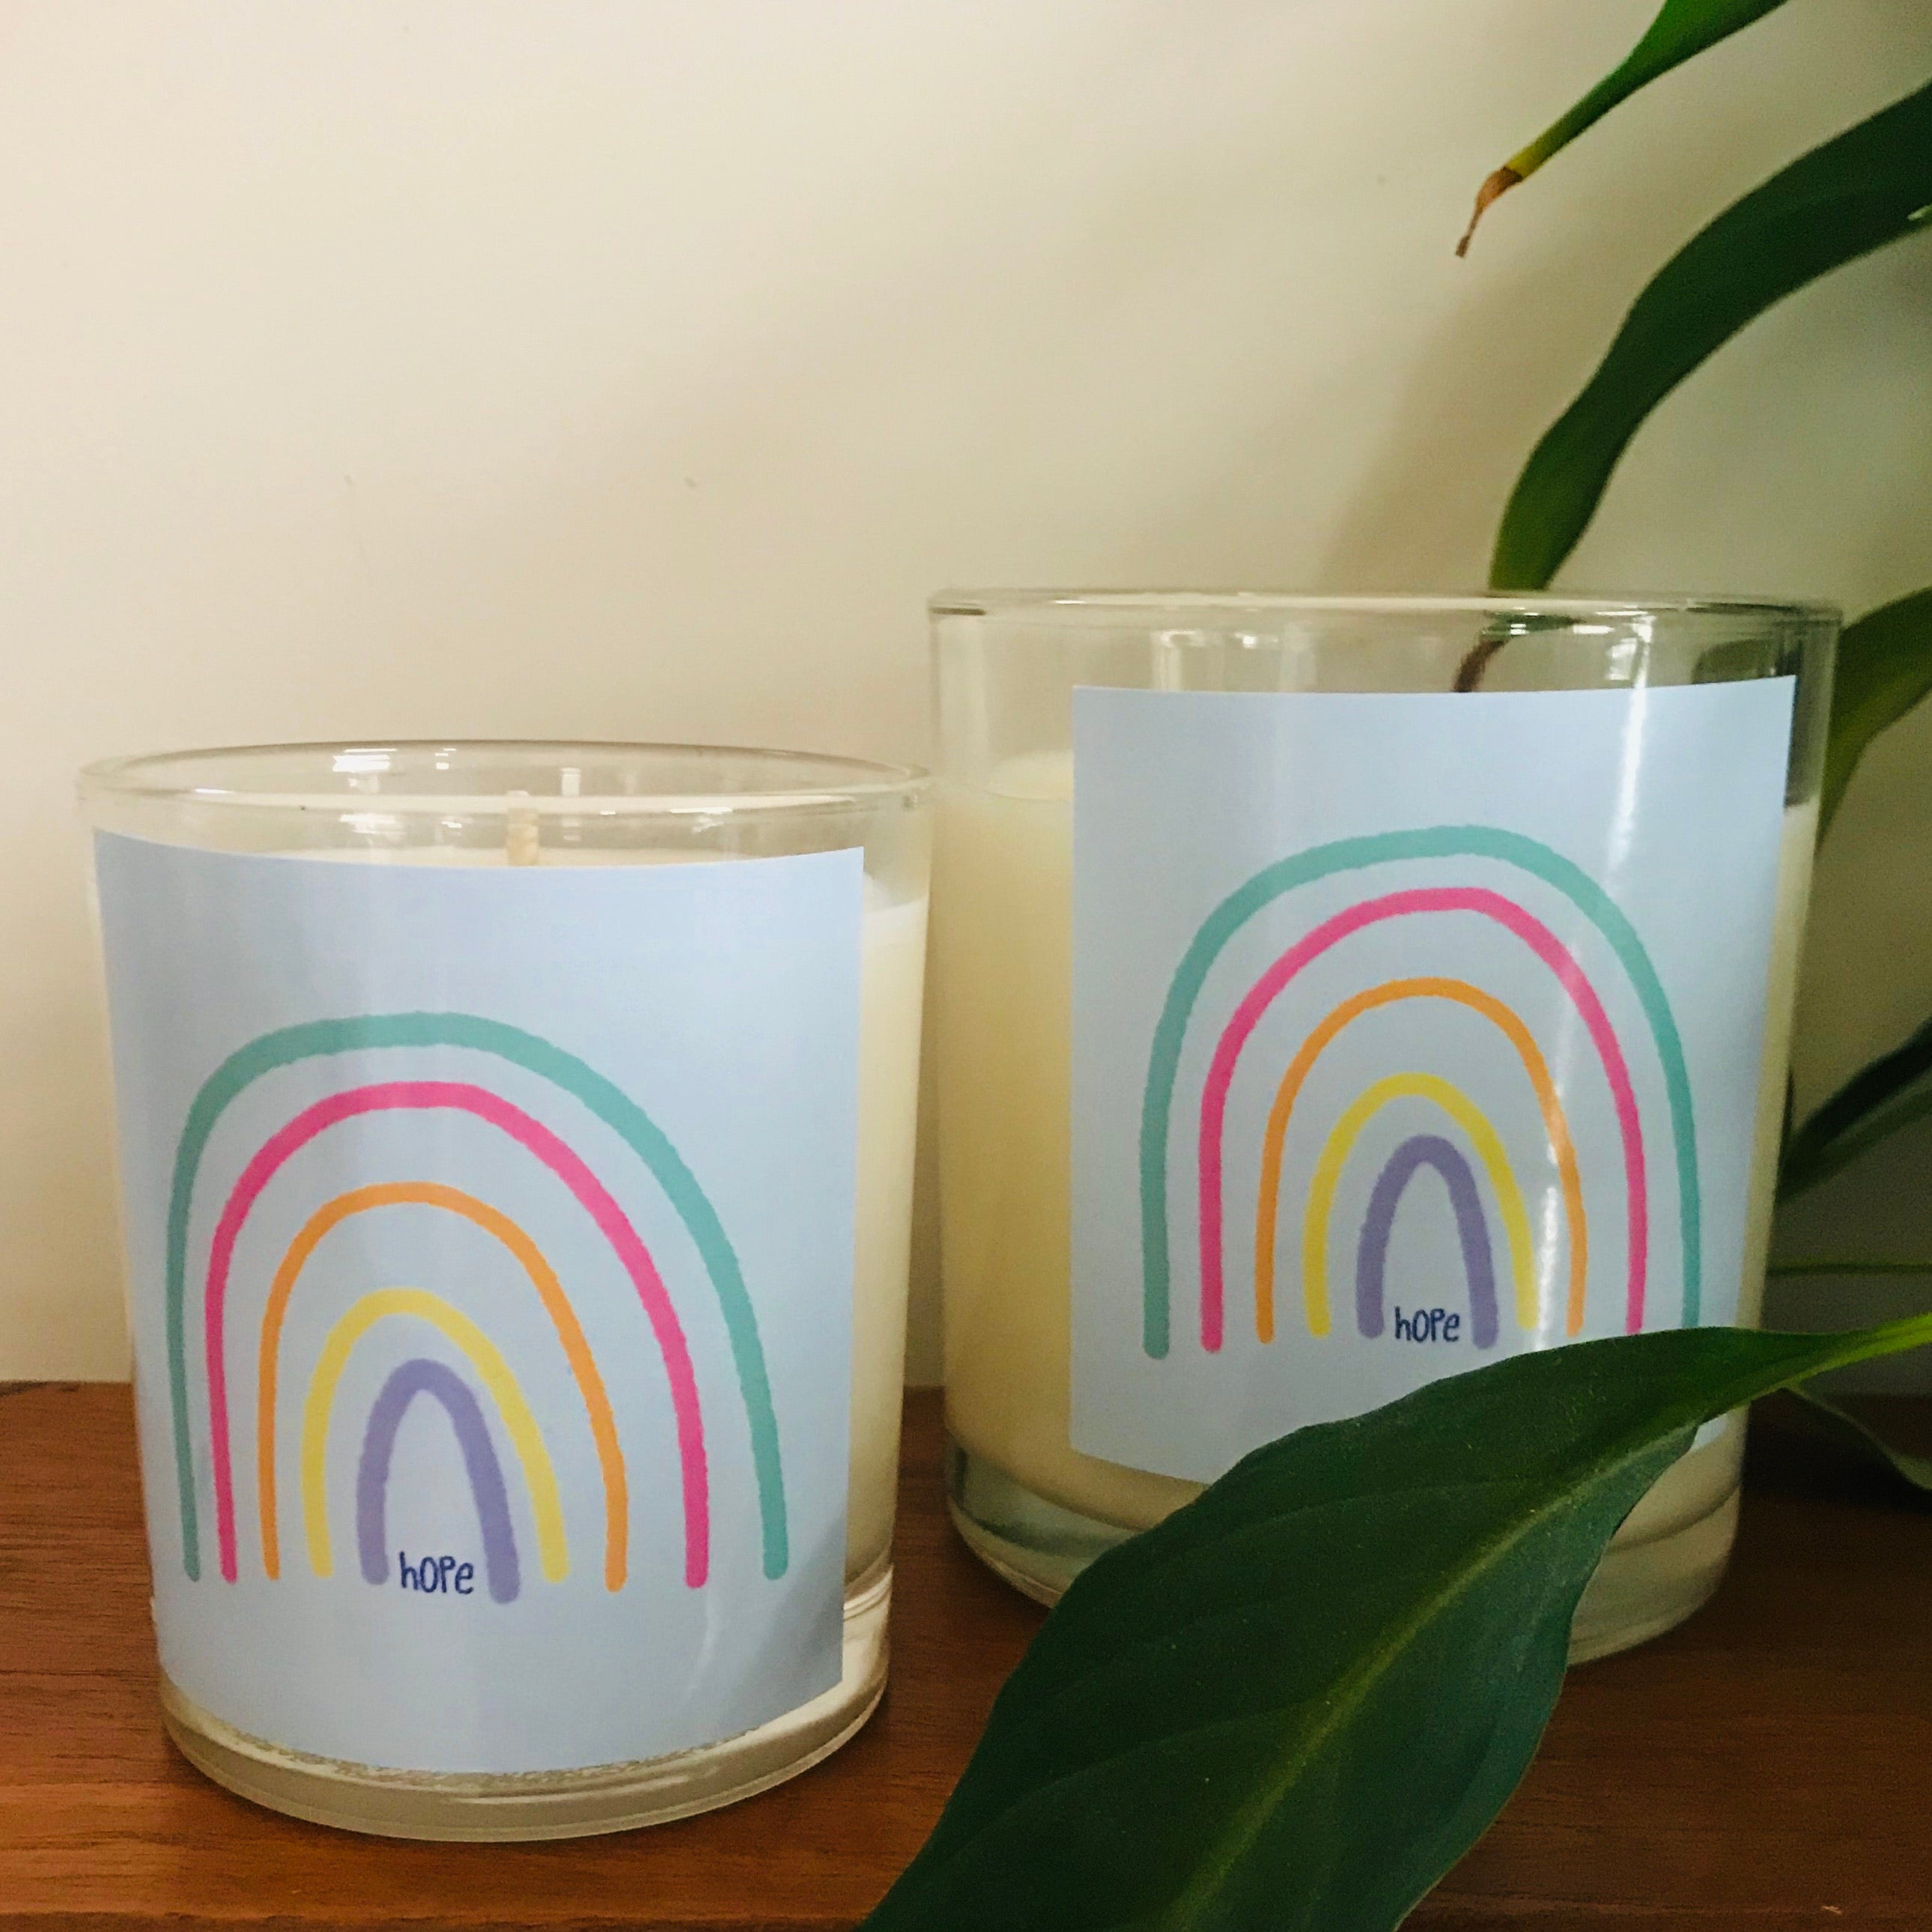 RAINBOW HOPE - Musk Sticks - Hand Poured Glass Candle Collection (two sizes)